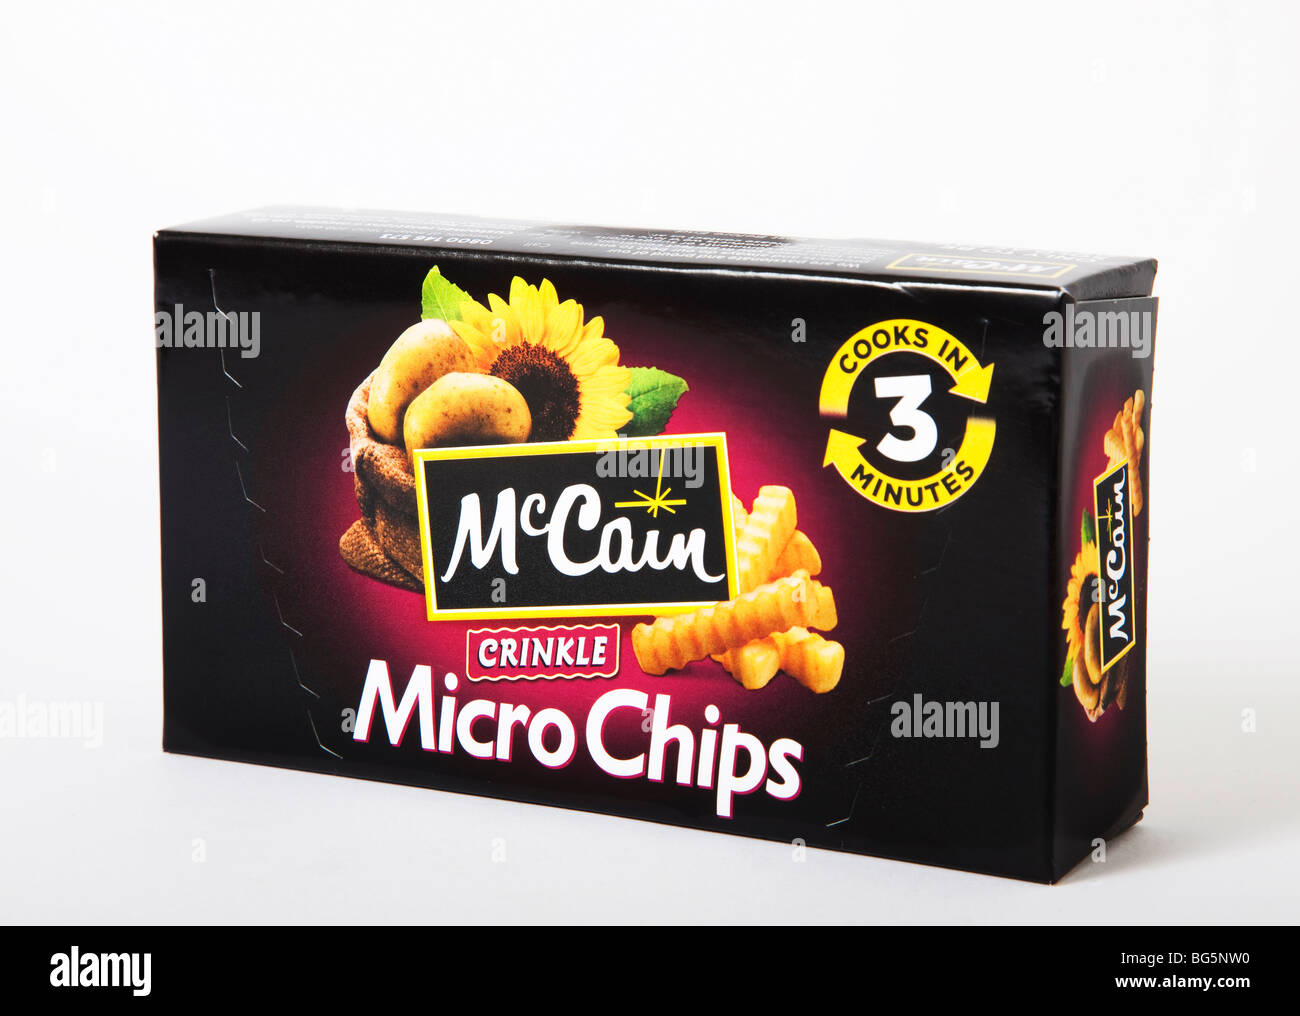 Micro Chips Stock Photos & Micro Chips Stock Images - Alamy